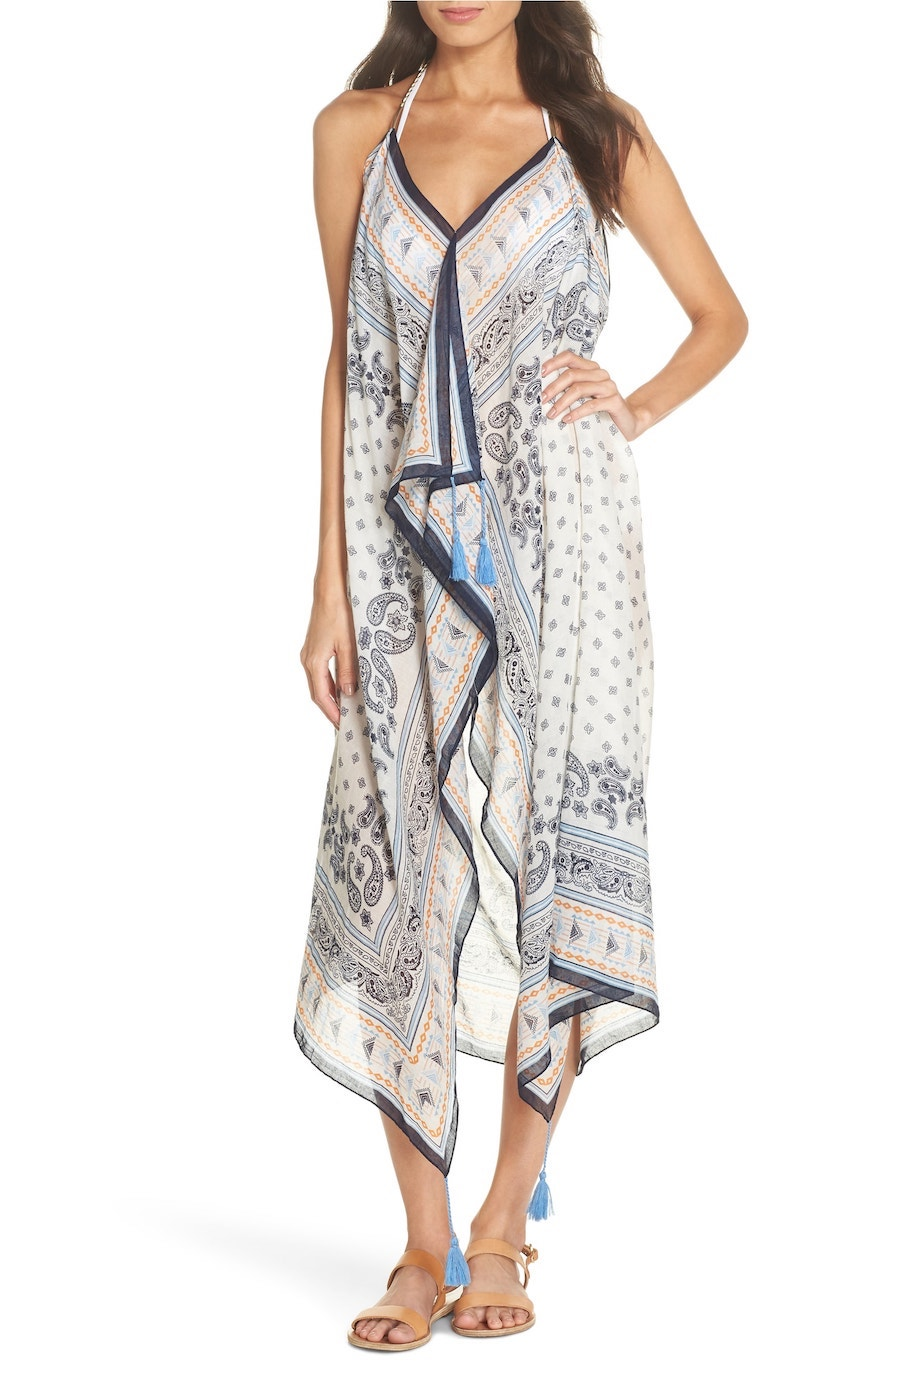 ef31f53219 8 stylish beach + pool coverups for moms this summer